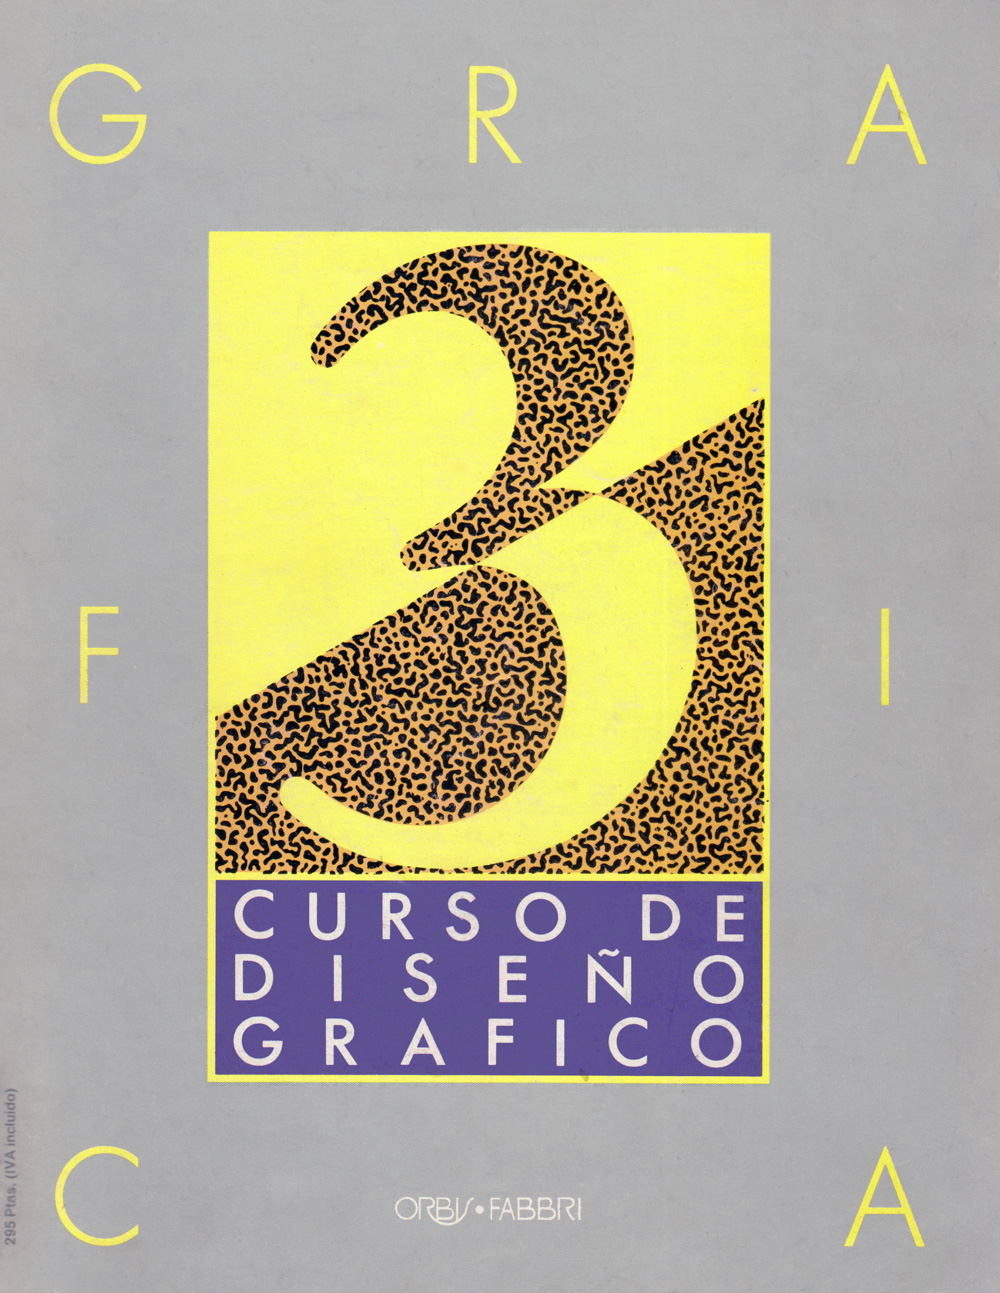 Curso de dise o gr fico fonts in use for Curso de diseno grafico